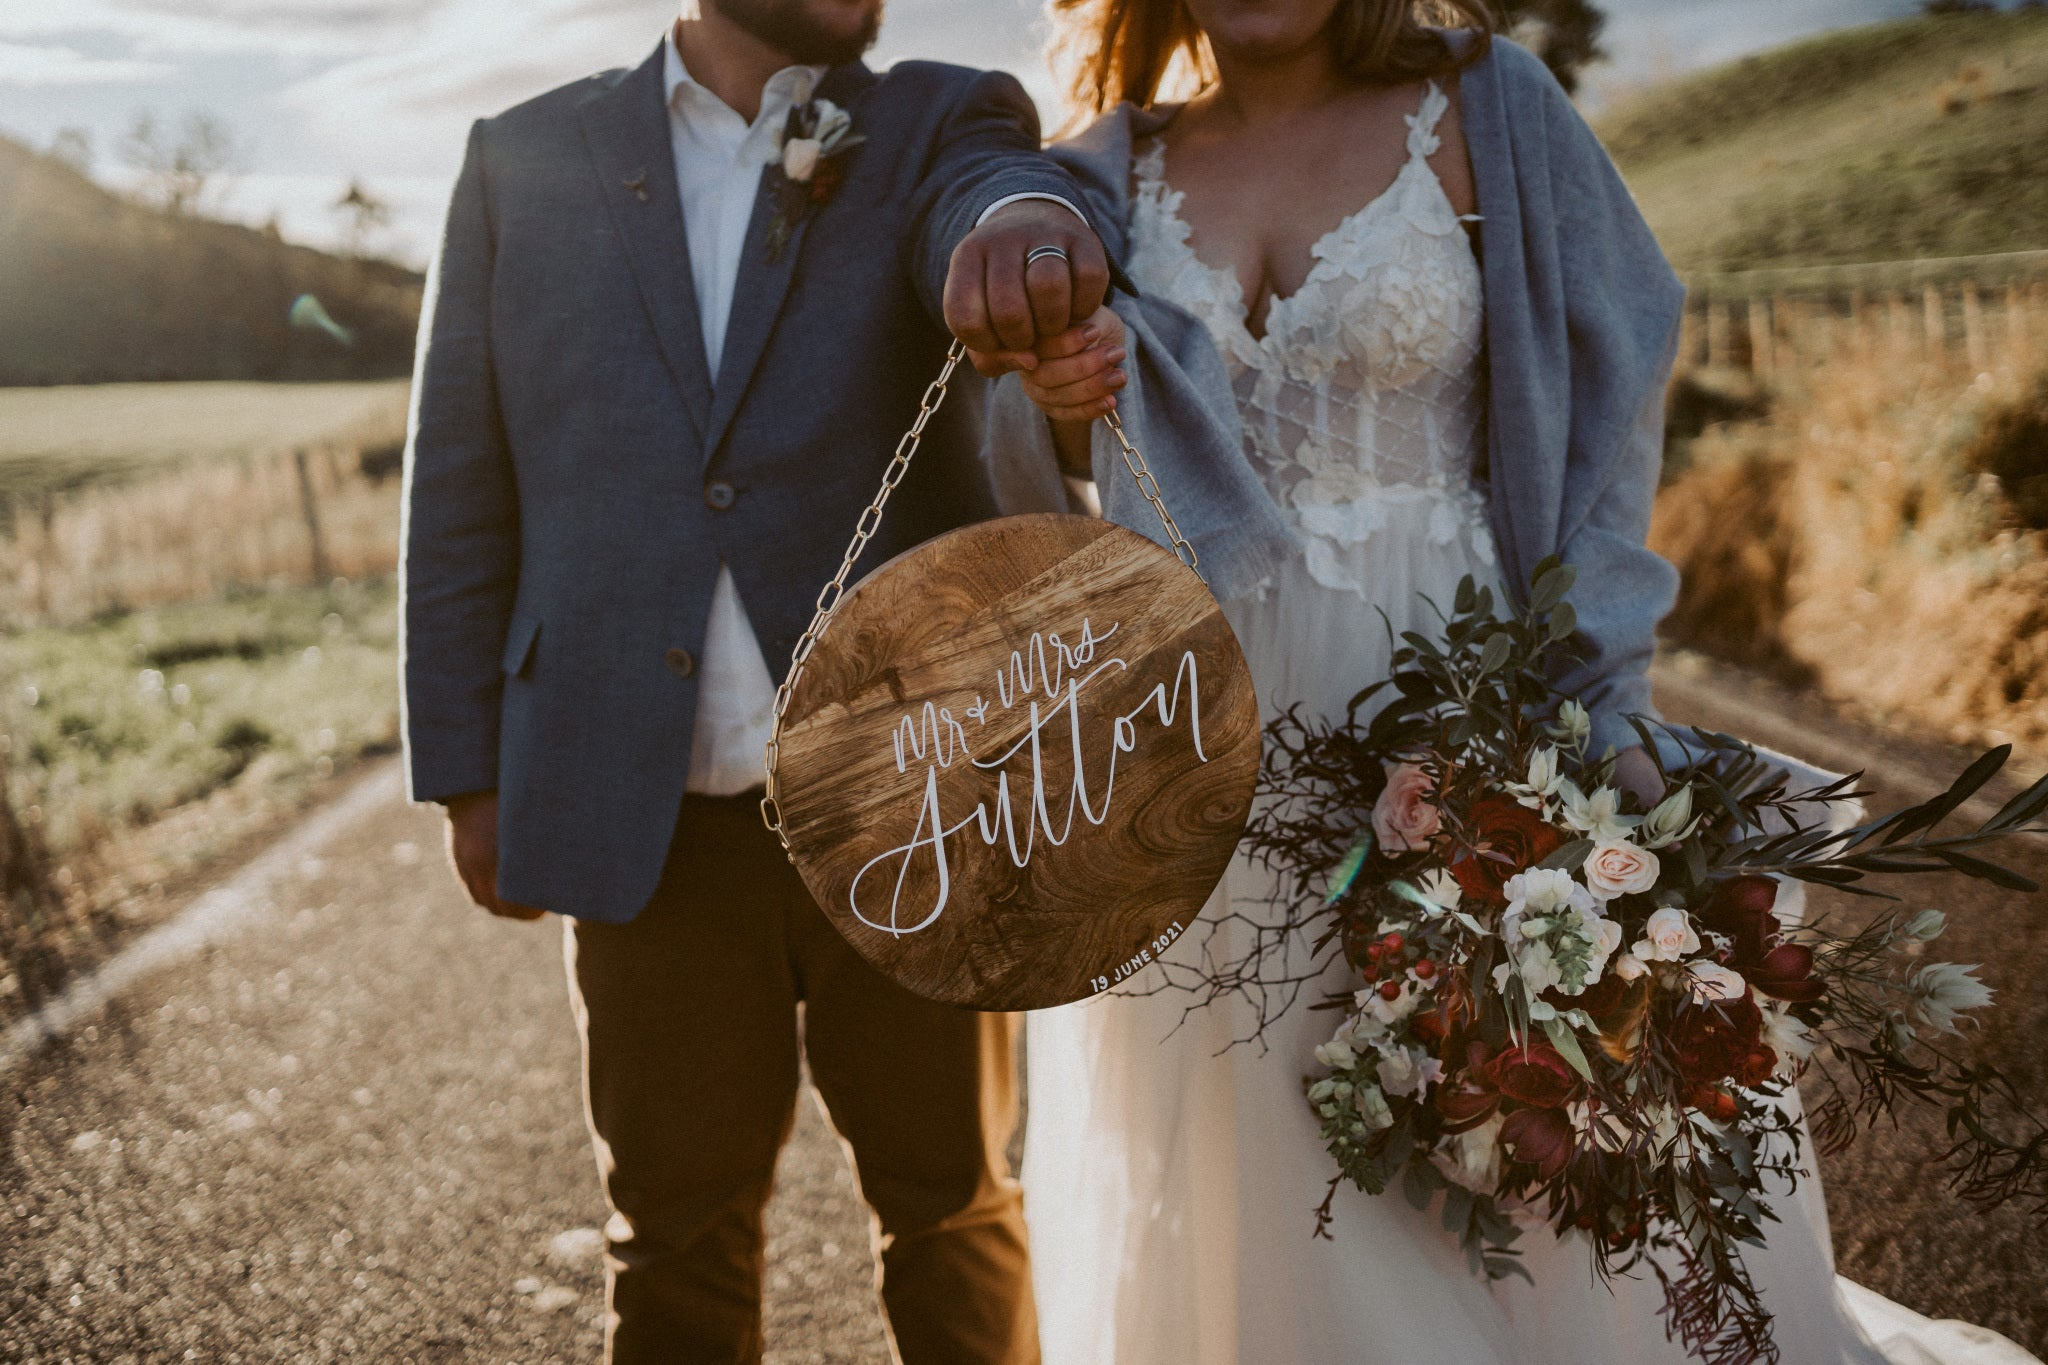 Lily + Josh | Newlywed wood name plaque sign | The Paper Gazelle Wedding Feature